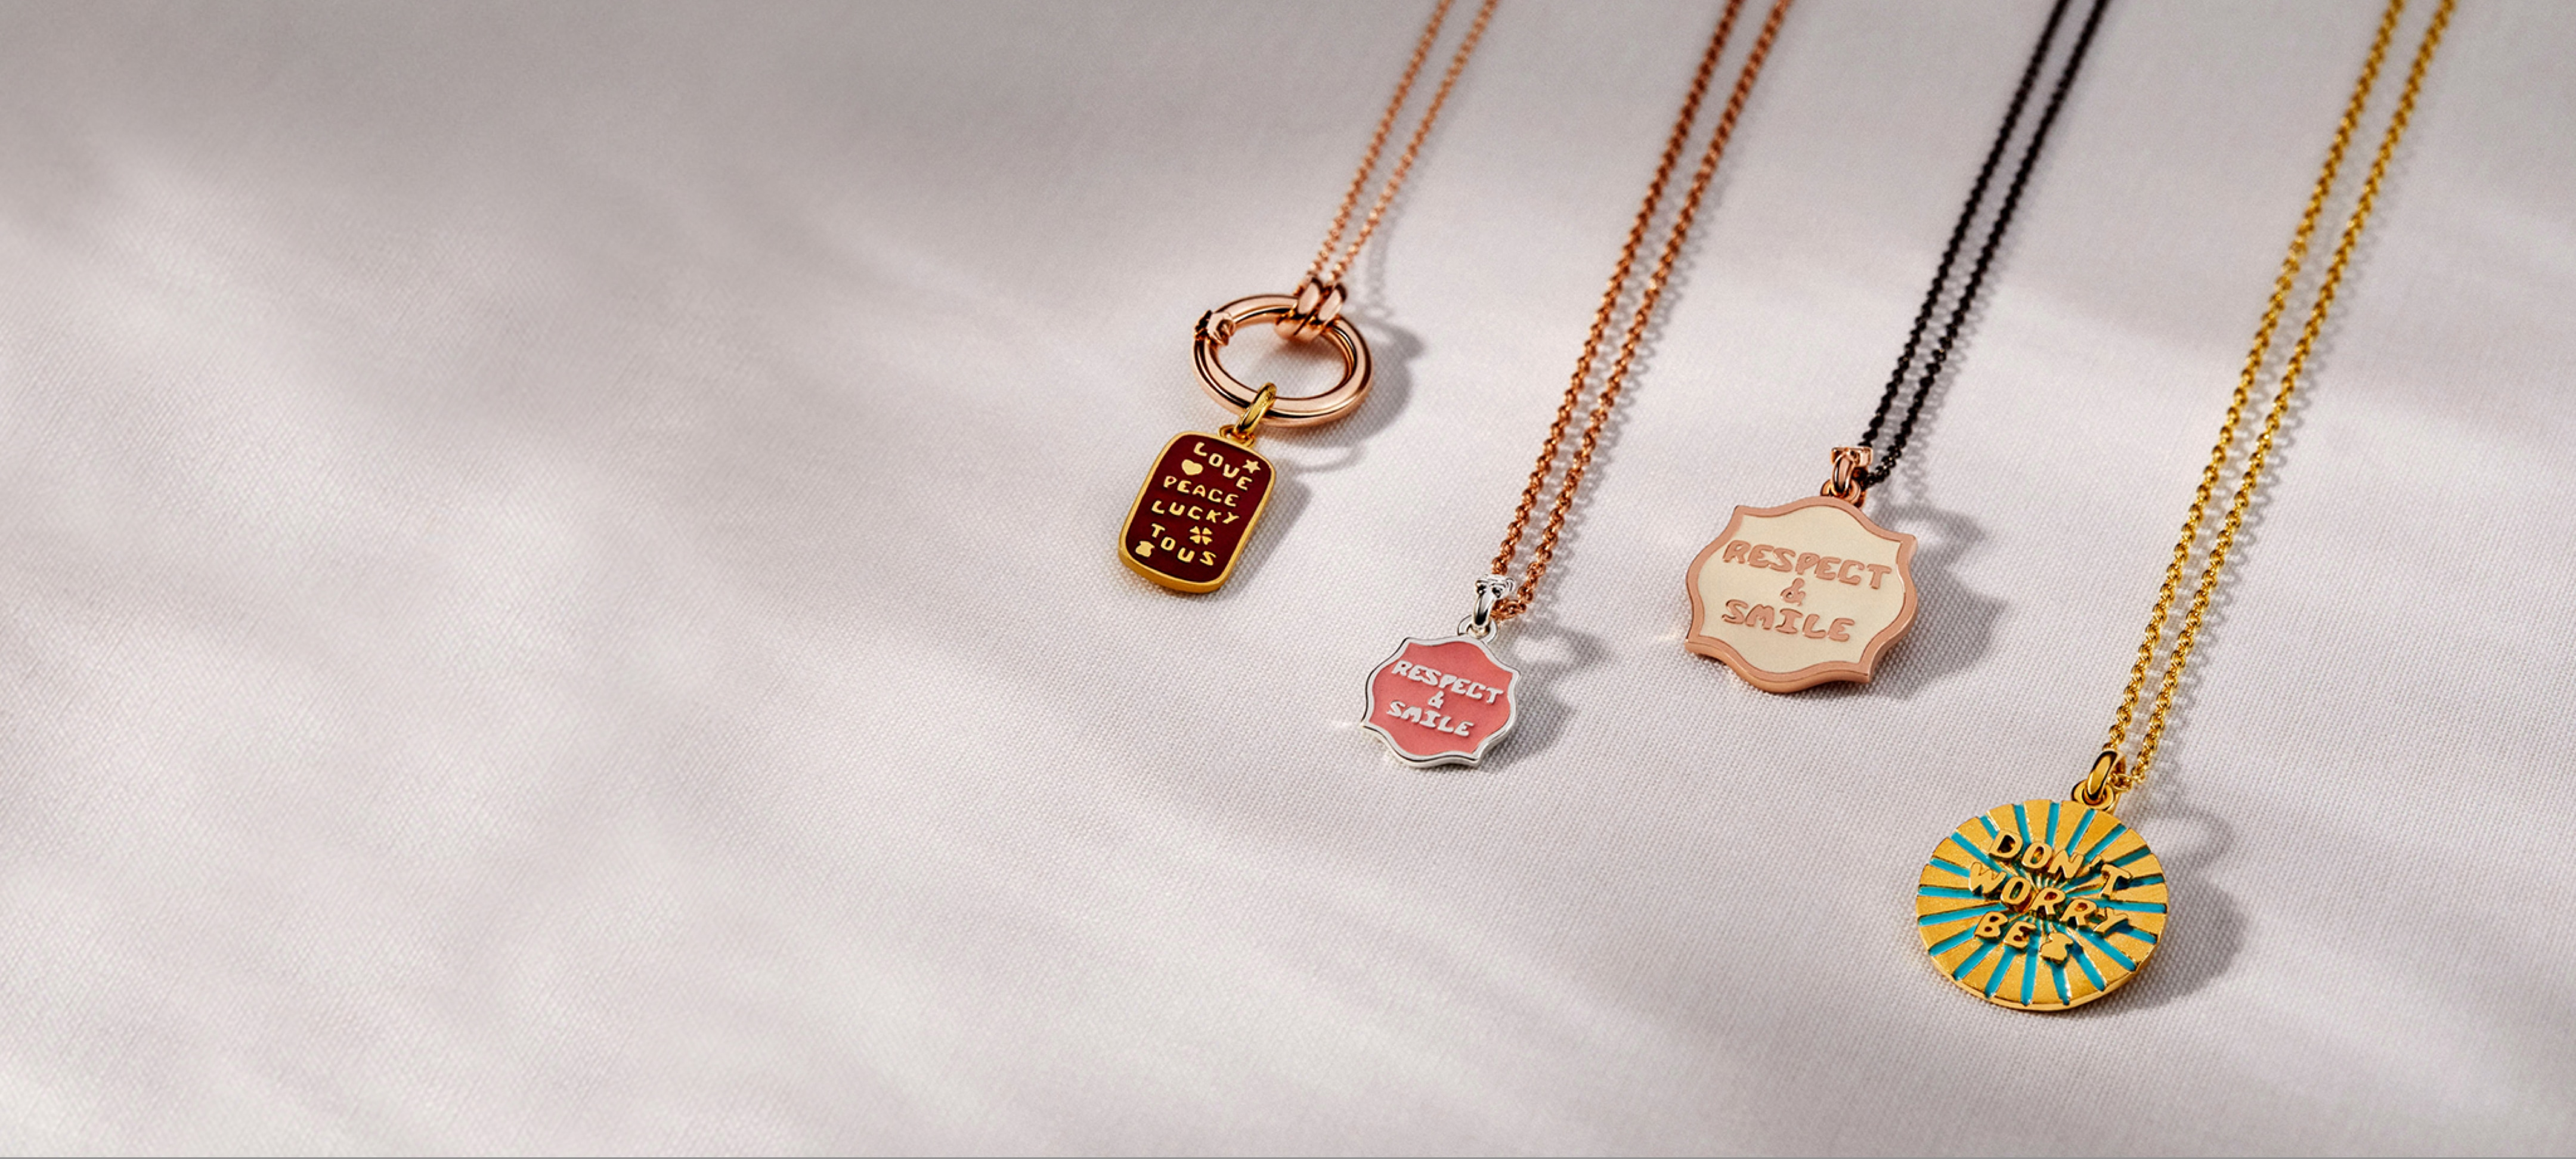 493f0f030790 TOUS® Jewelry store